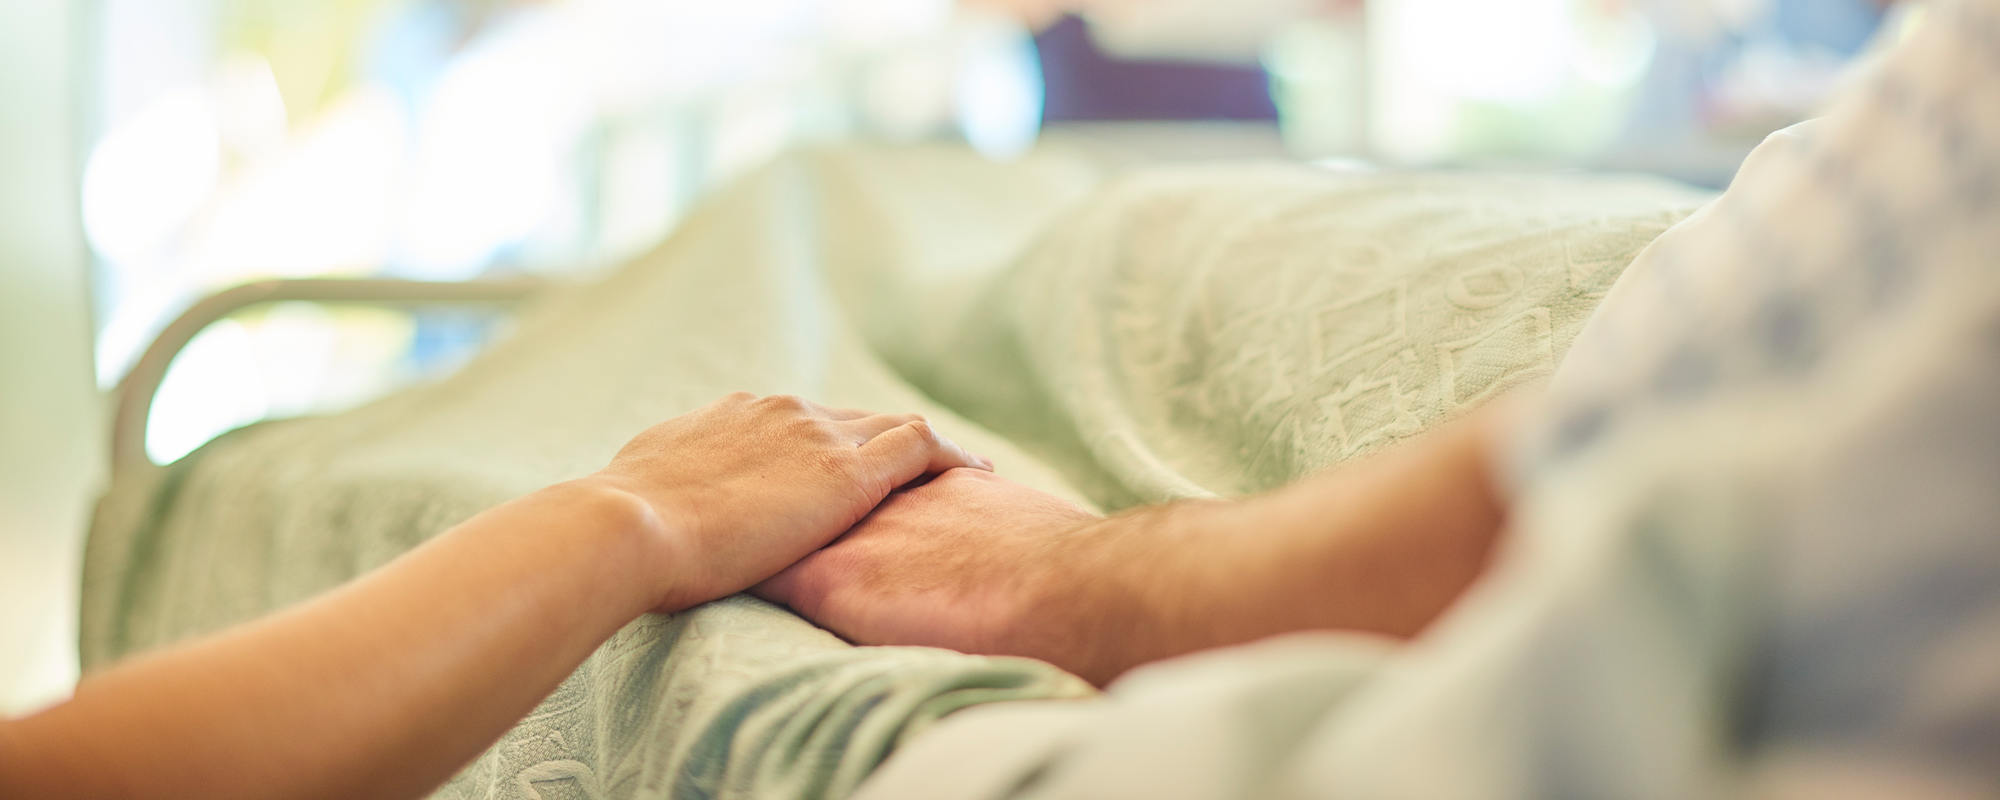 Person holding hands with someone in a hospital bed